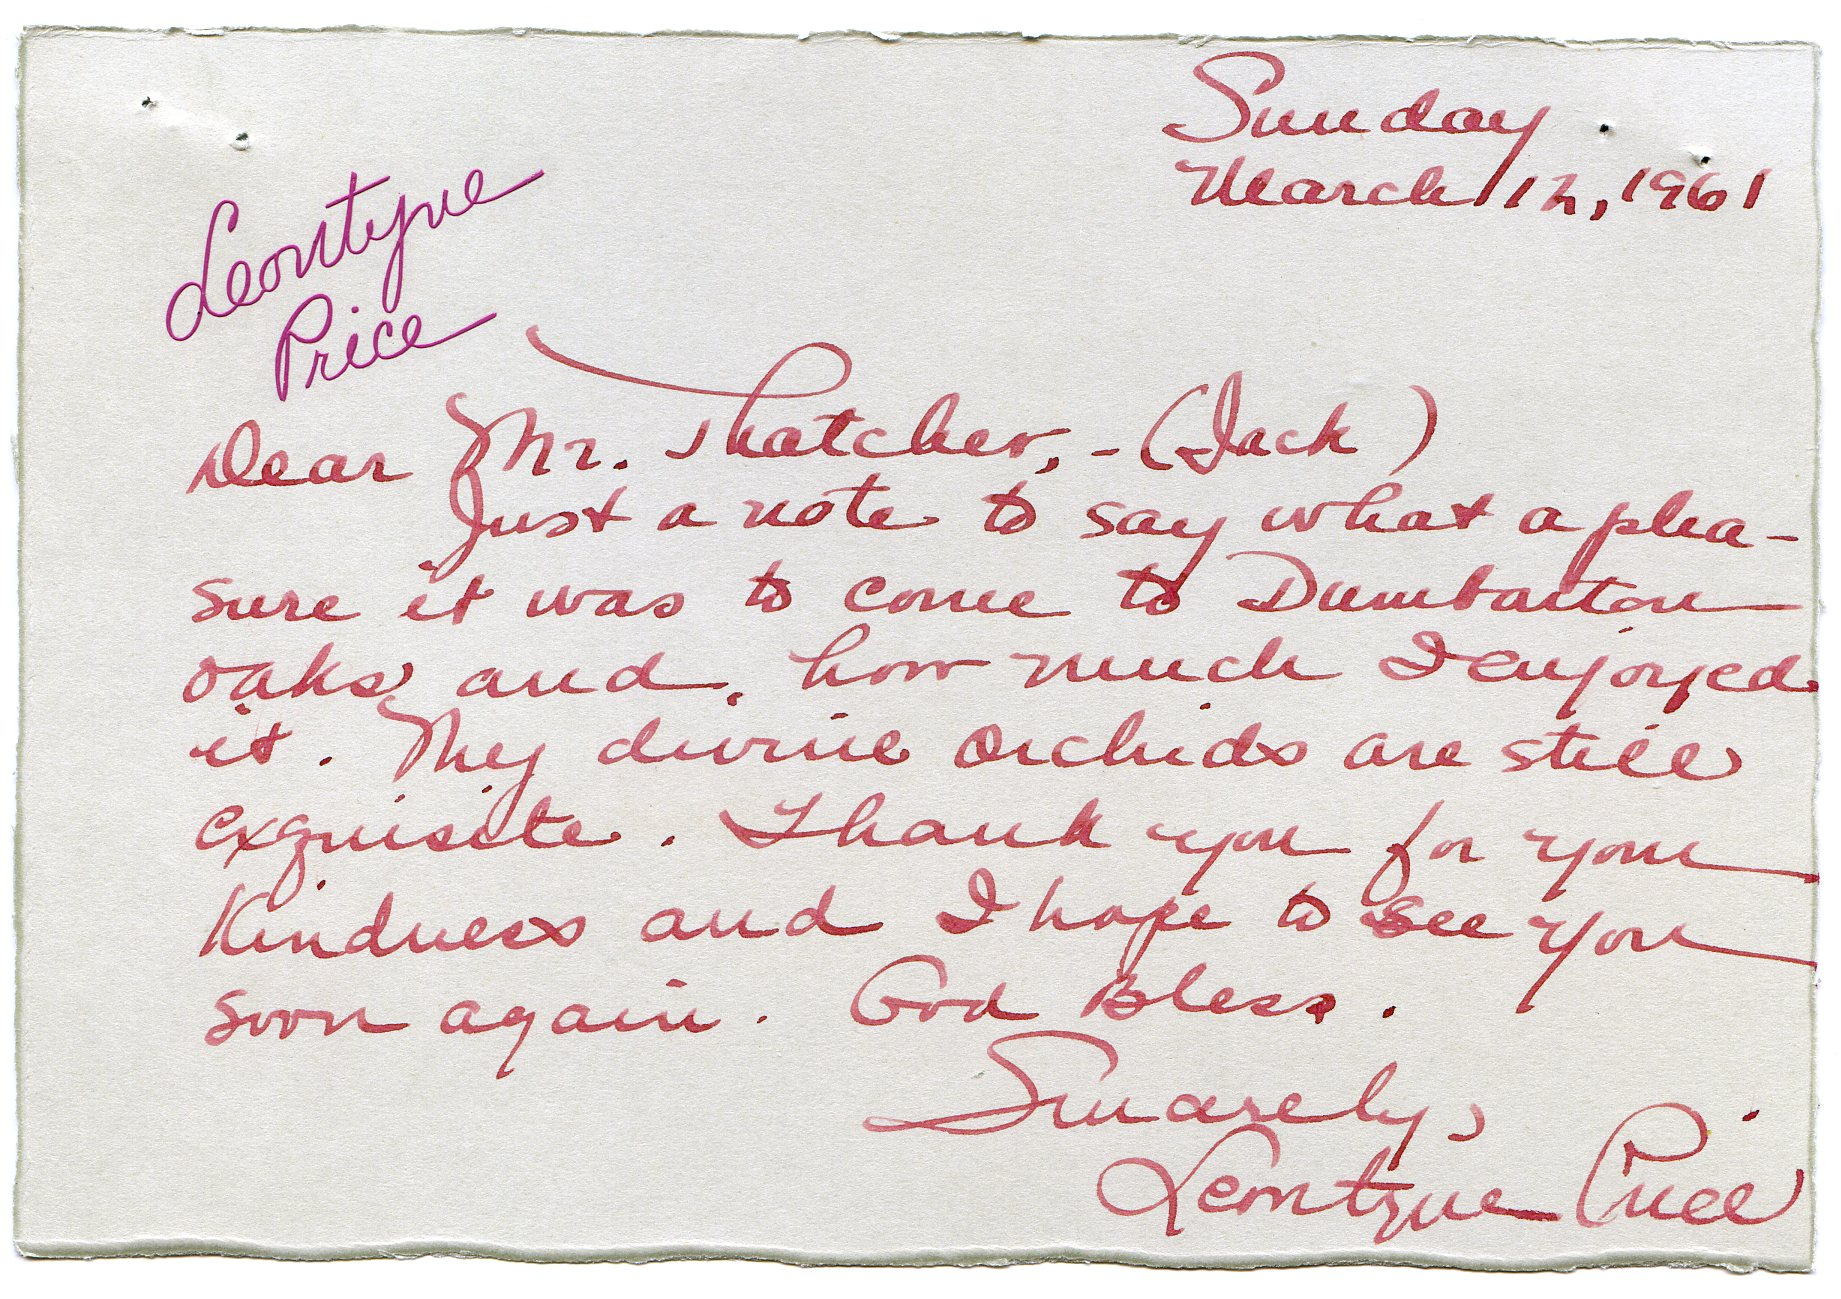 Letter from soprano Leontyne Price to John Thacher after her Friends of Music concert at Dumbarton Oaks on March 9, 1961